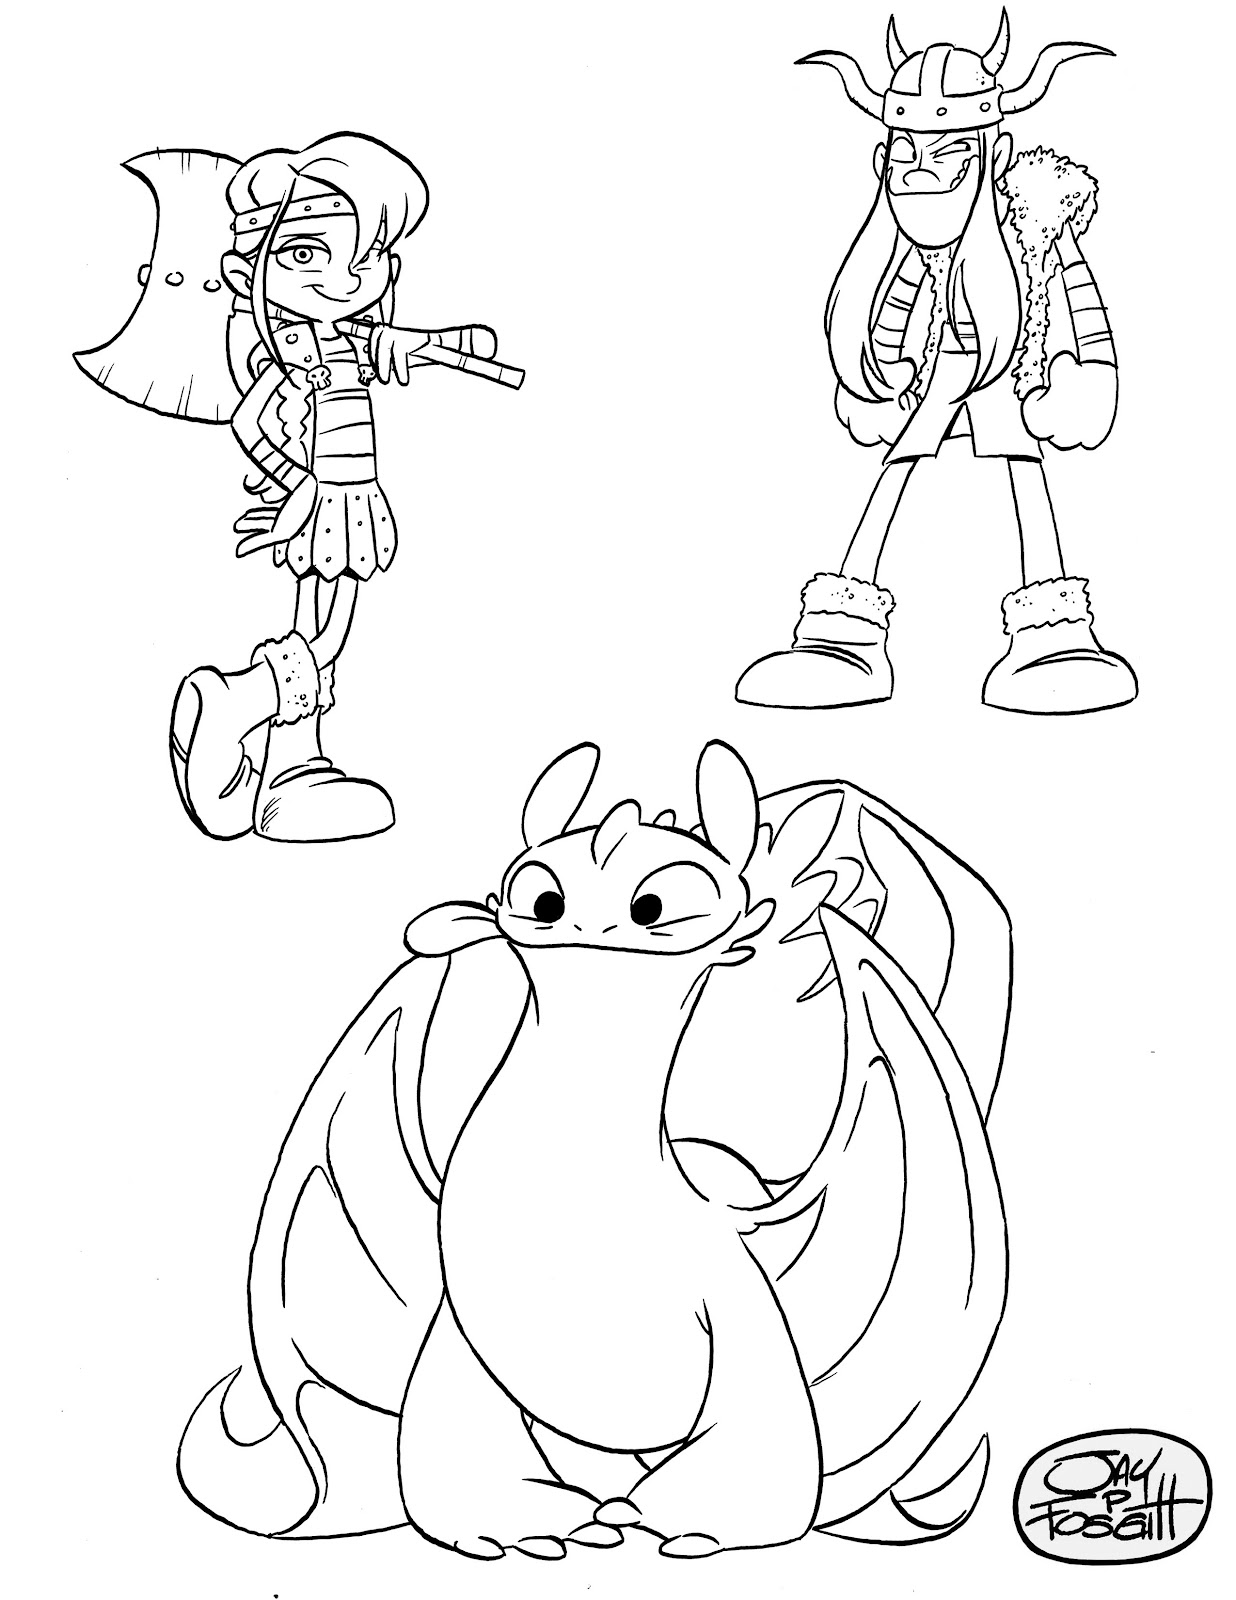 Dreamworksanimation dragons free coloring pages for Dreamworks coloring pages